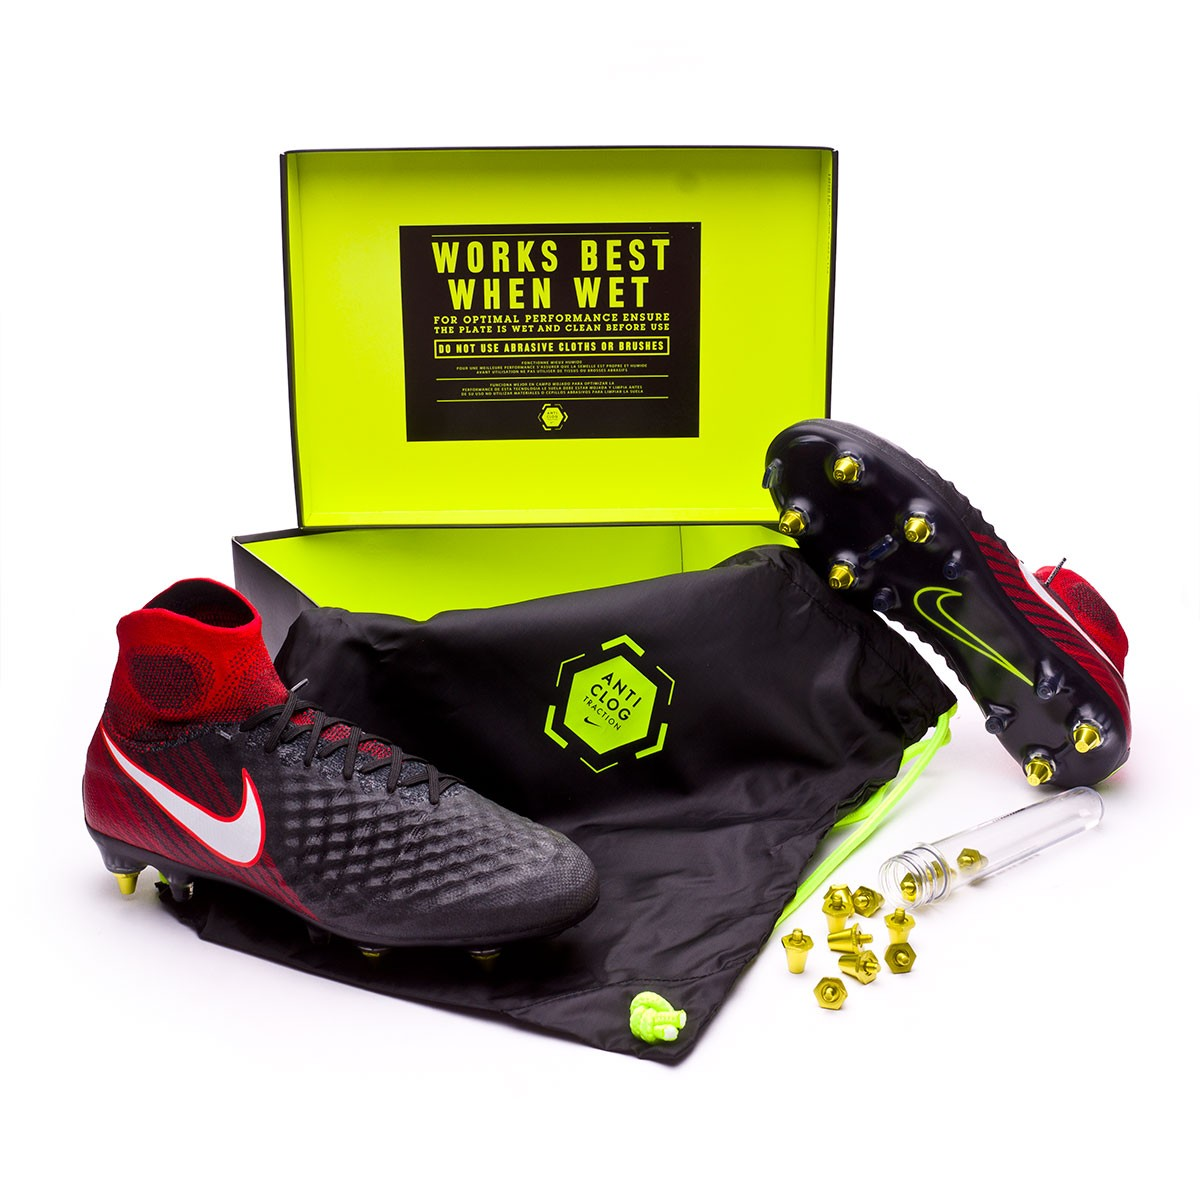 brand new 83483 3f00a Nike Magista Obra II ACC SG-Pro Anti-Clog Football Boots. Black-White-University  red ...